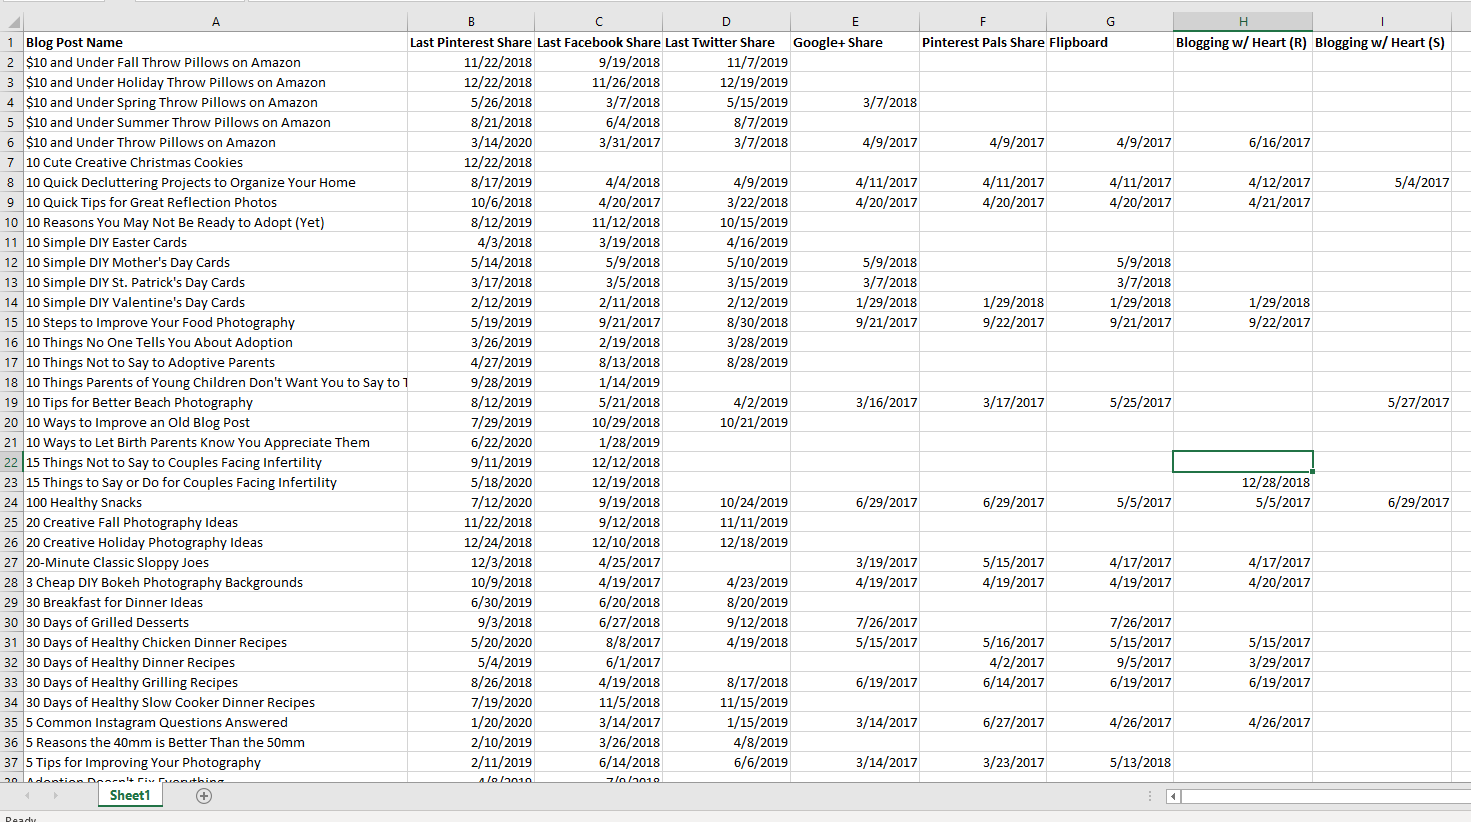 Blog Social Share Schedule | https://www.roseclearfield.com